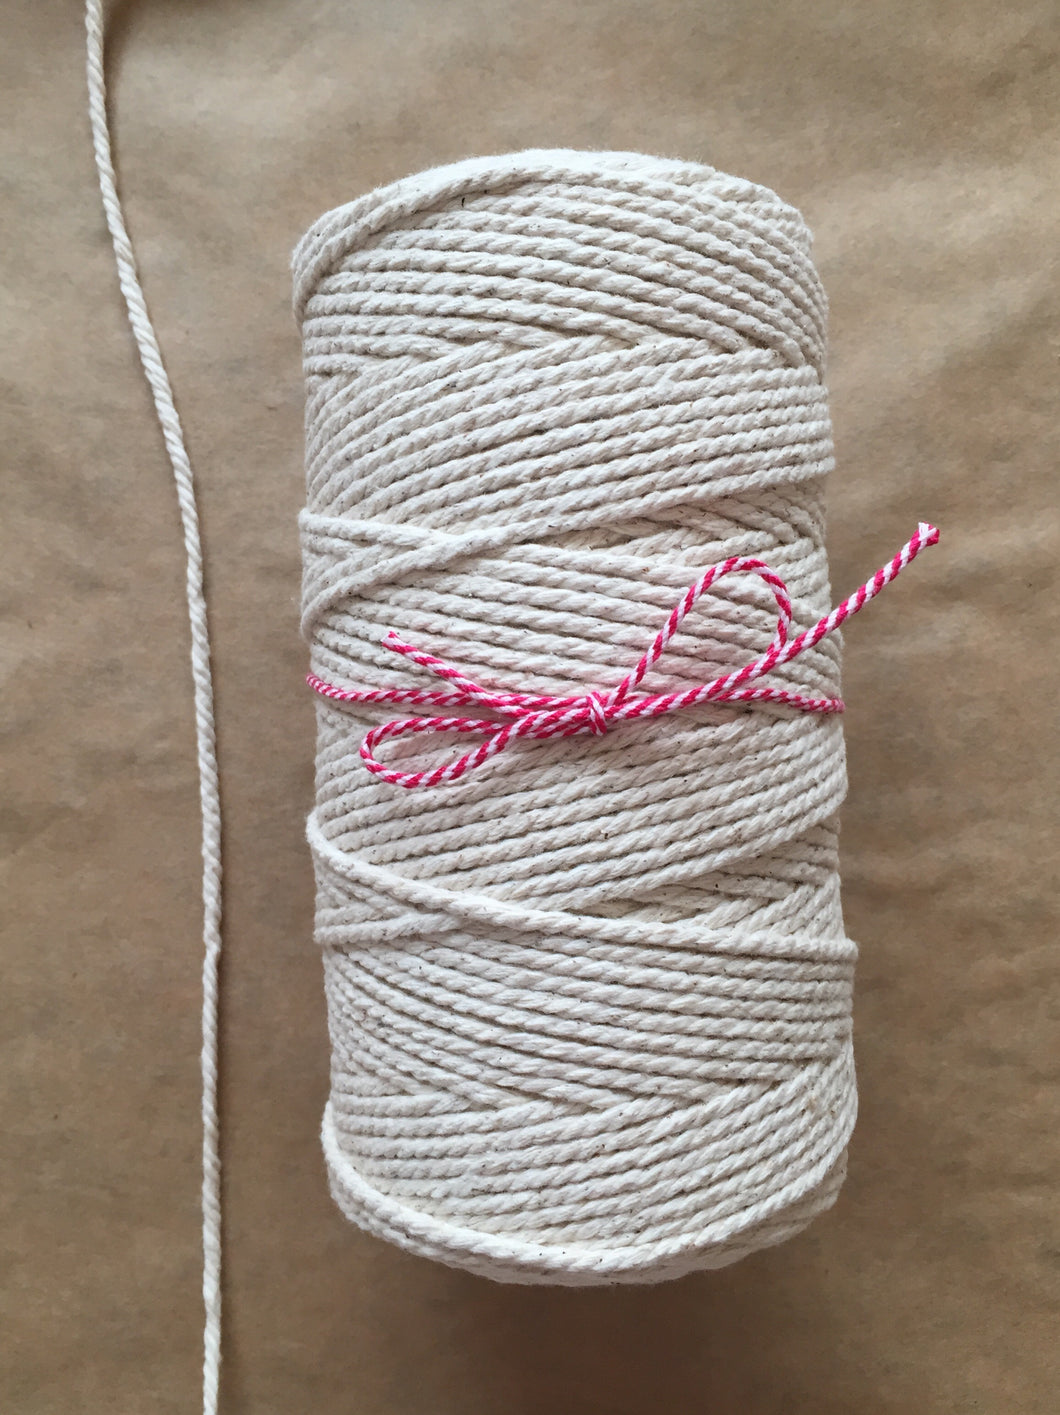 No. 3 Macramé Cord Neutral (500g) 3mm